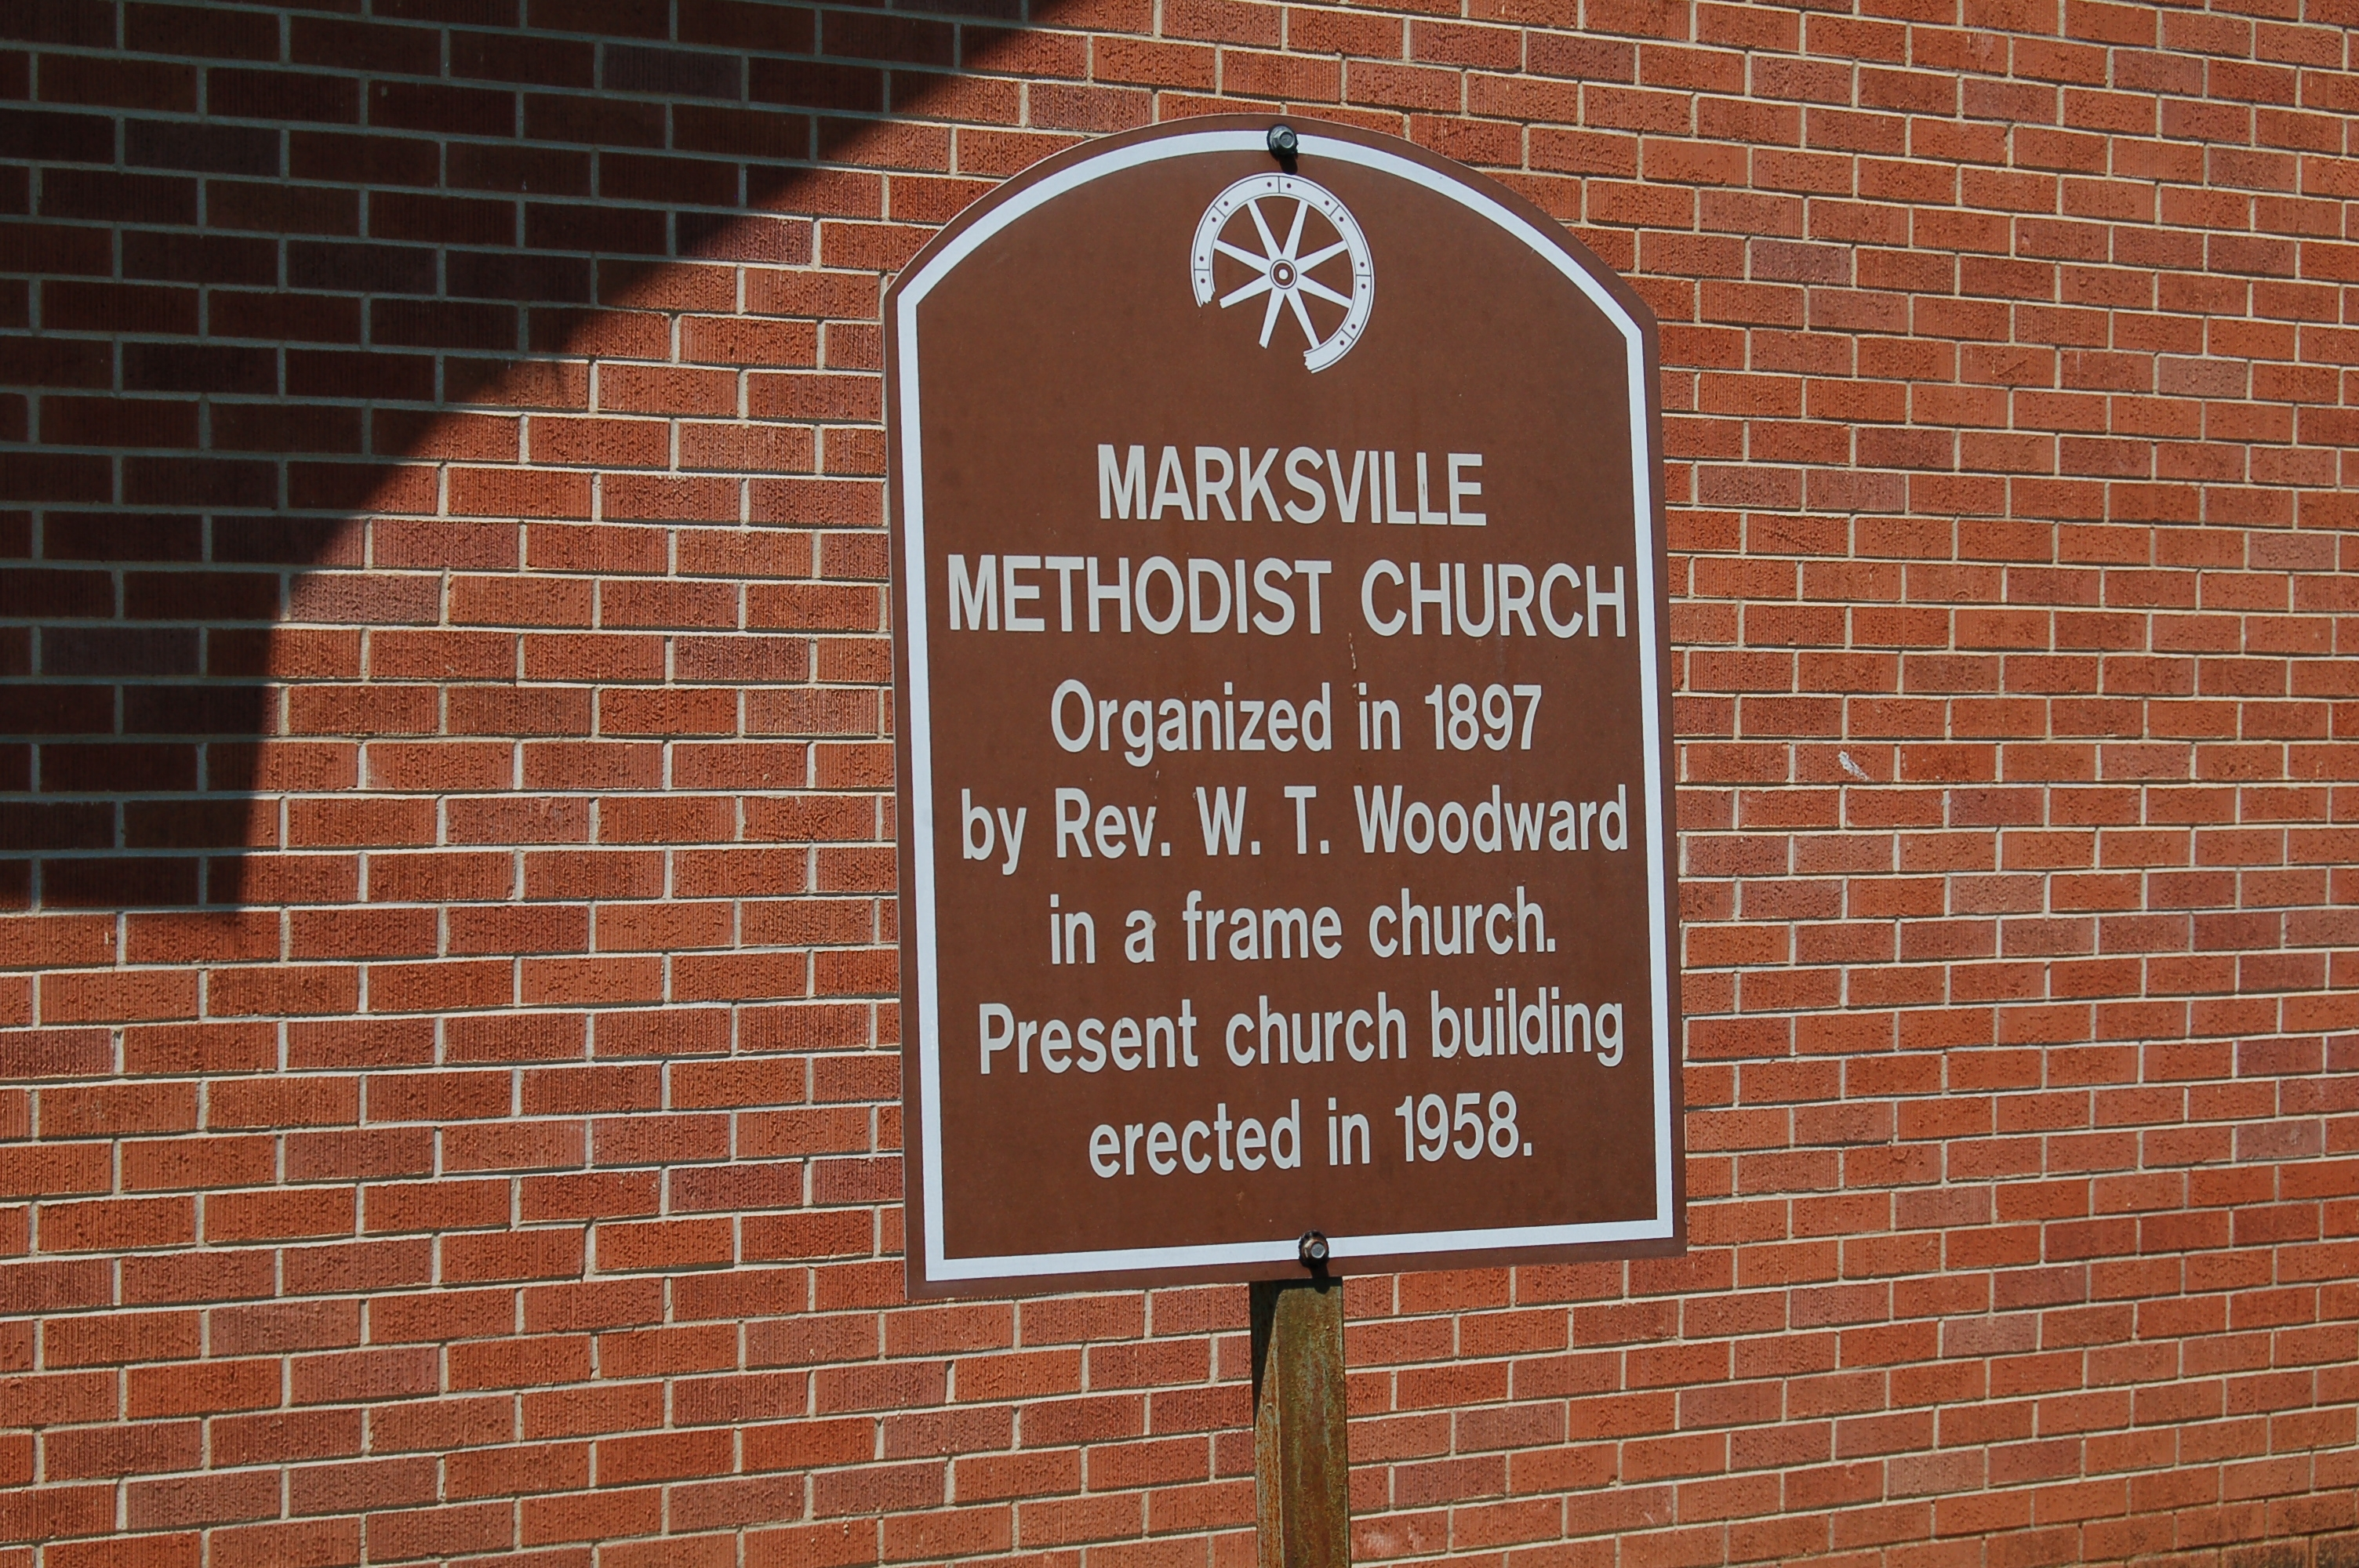 Marksville Methodist Church Marker